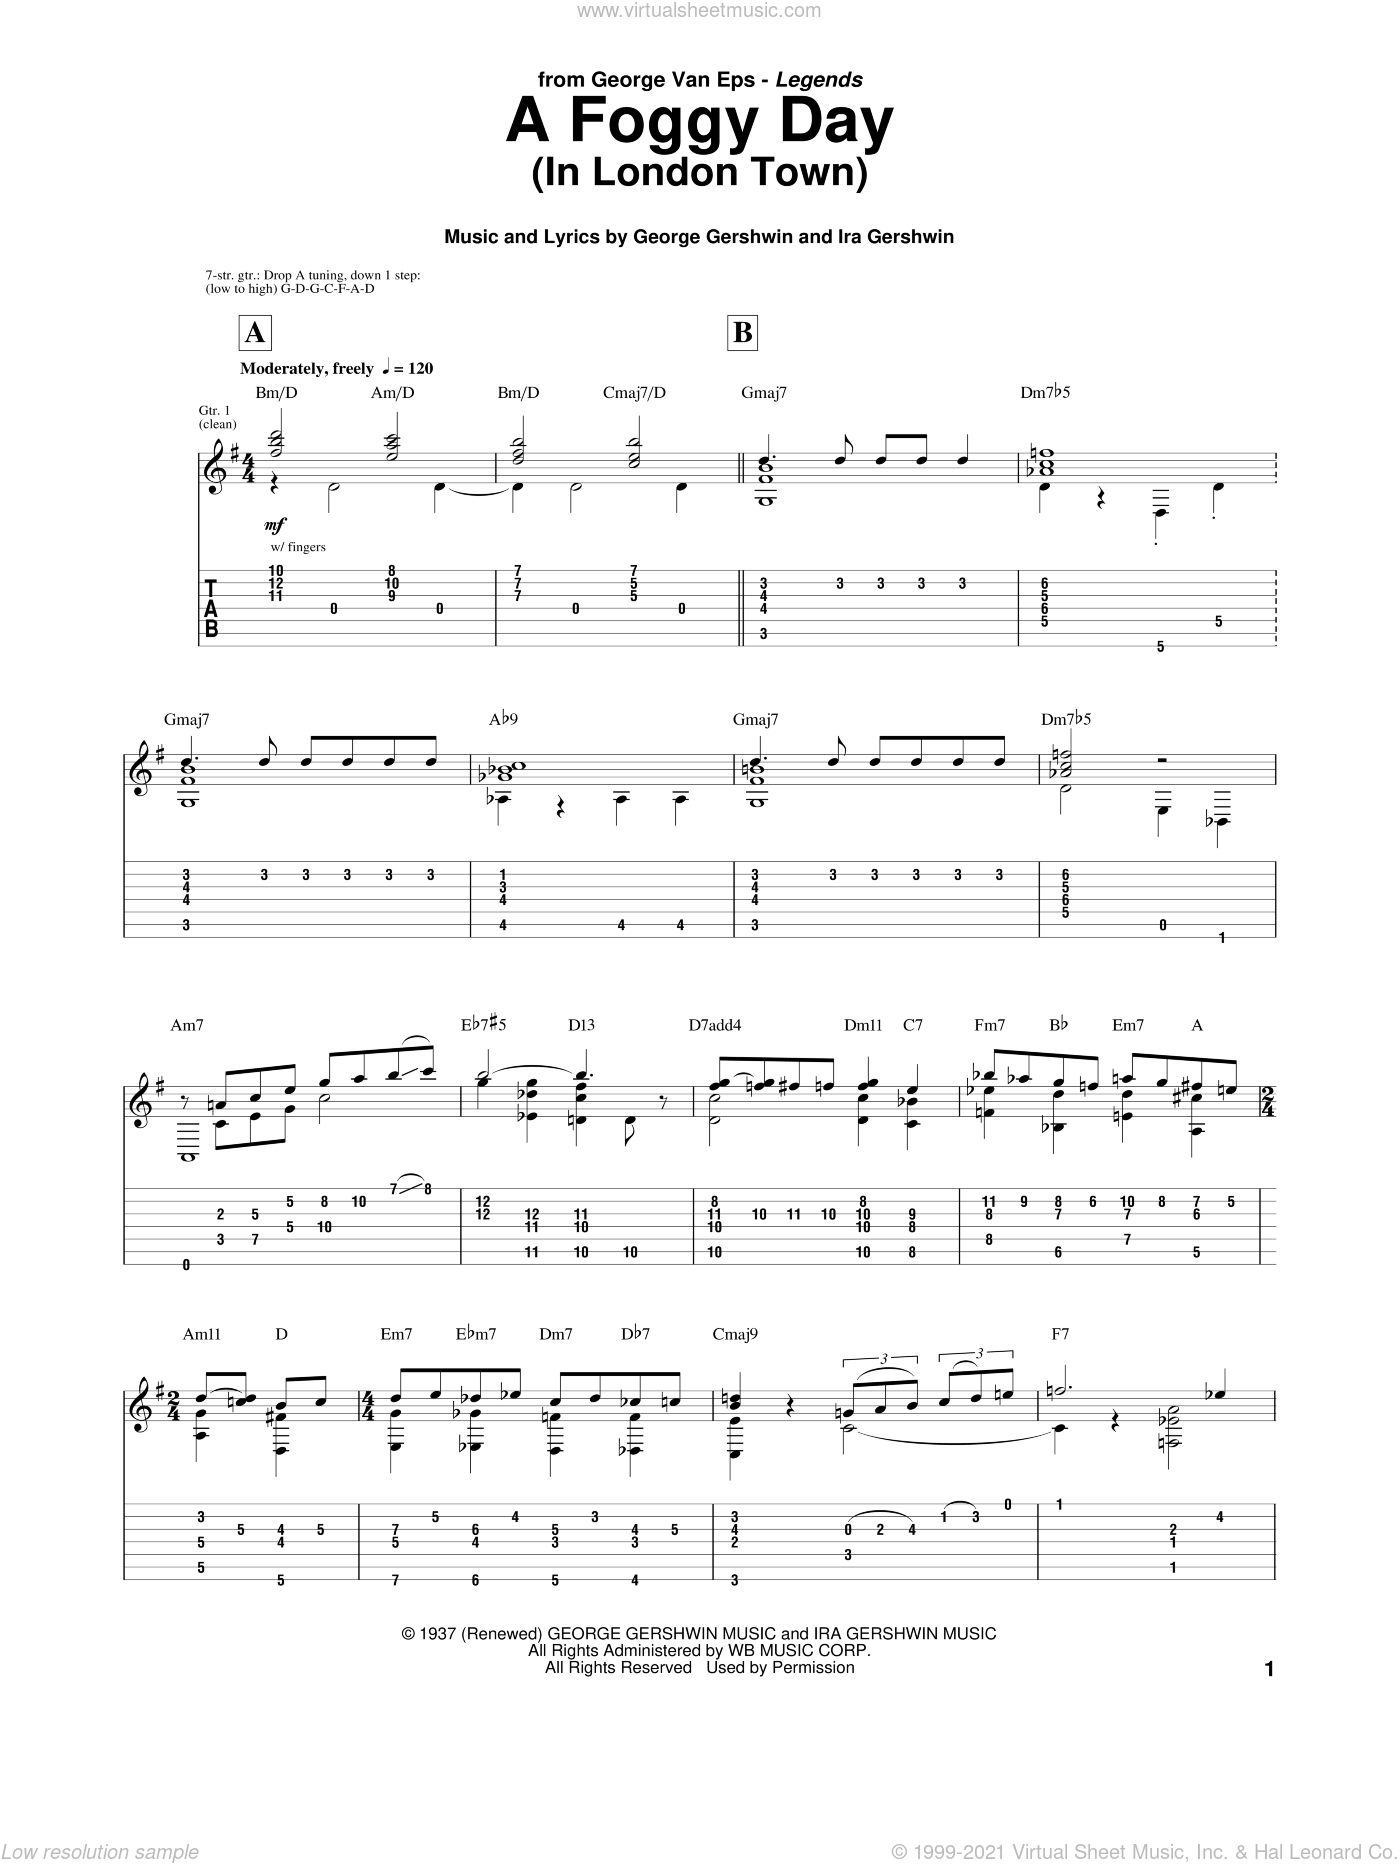 A Foggy Day (In London Town) sheet music for guitar (tablature) by Van Eps, George, George Gershwin and Ira Gershwin, intermediate skill level